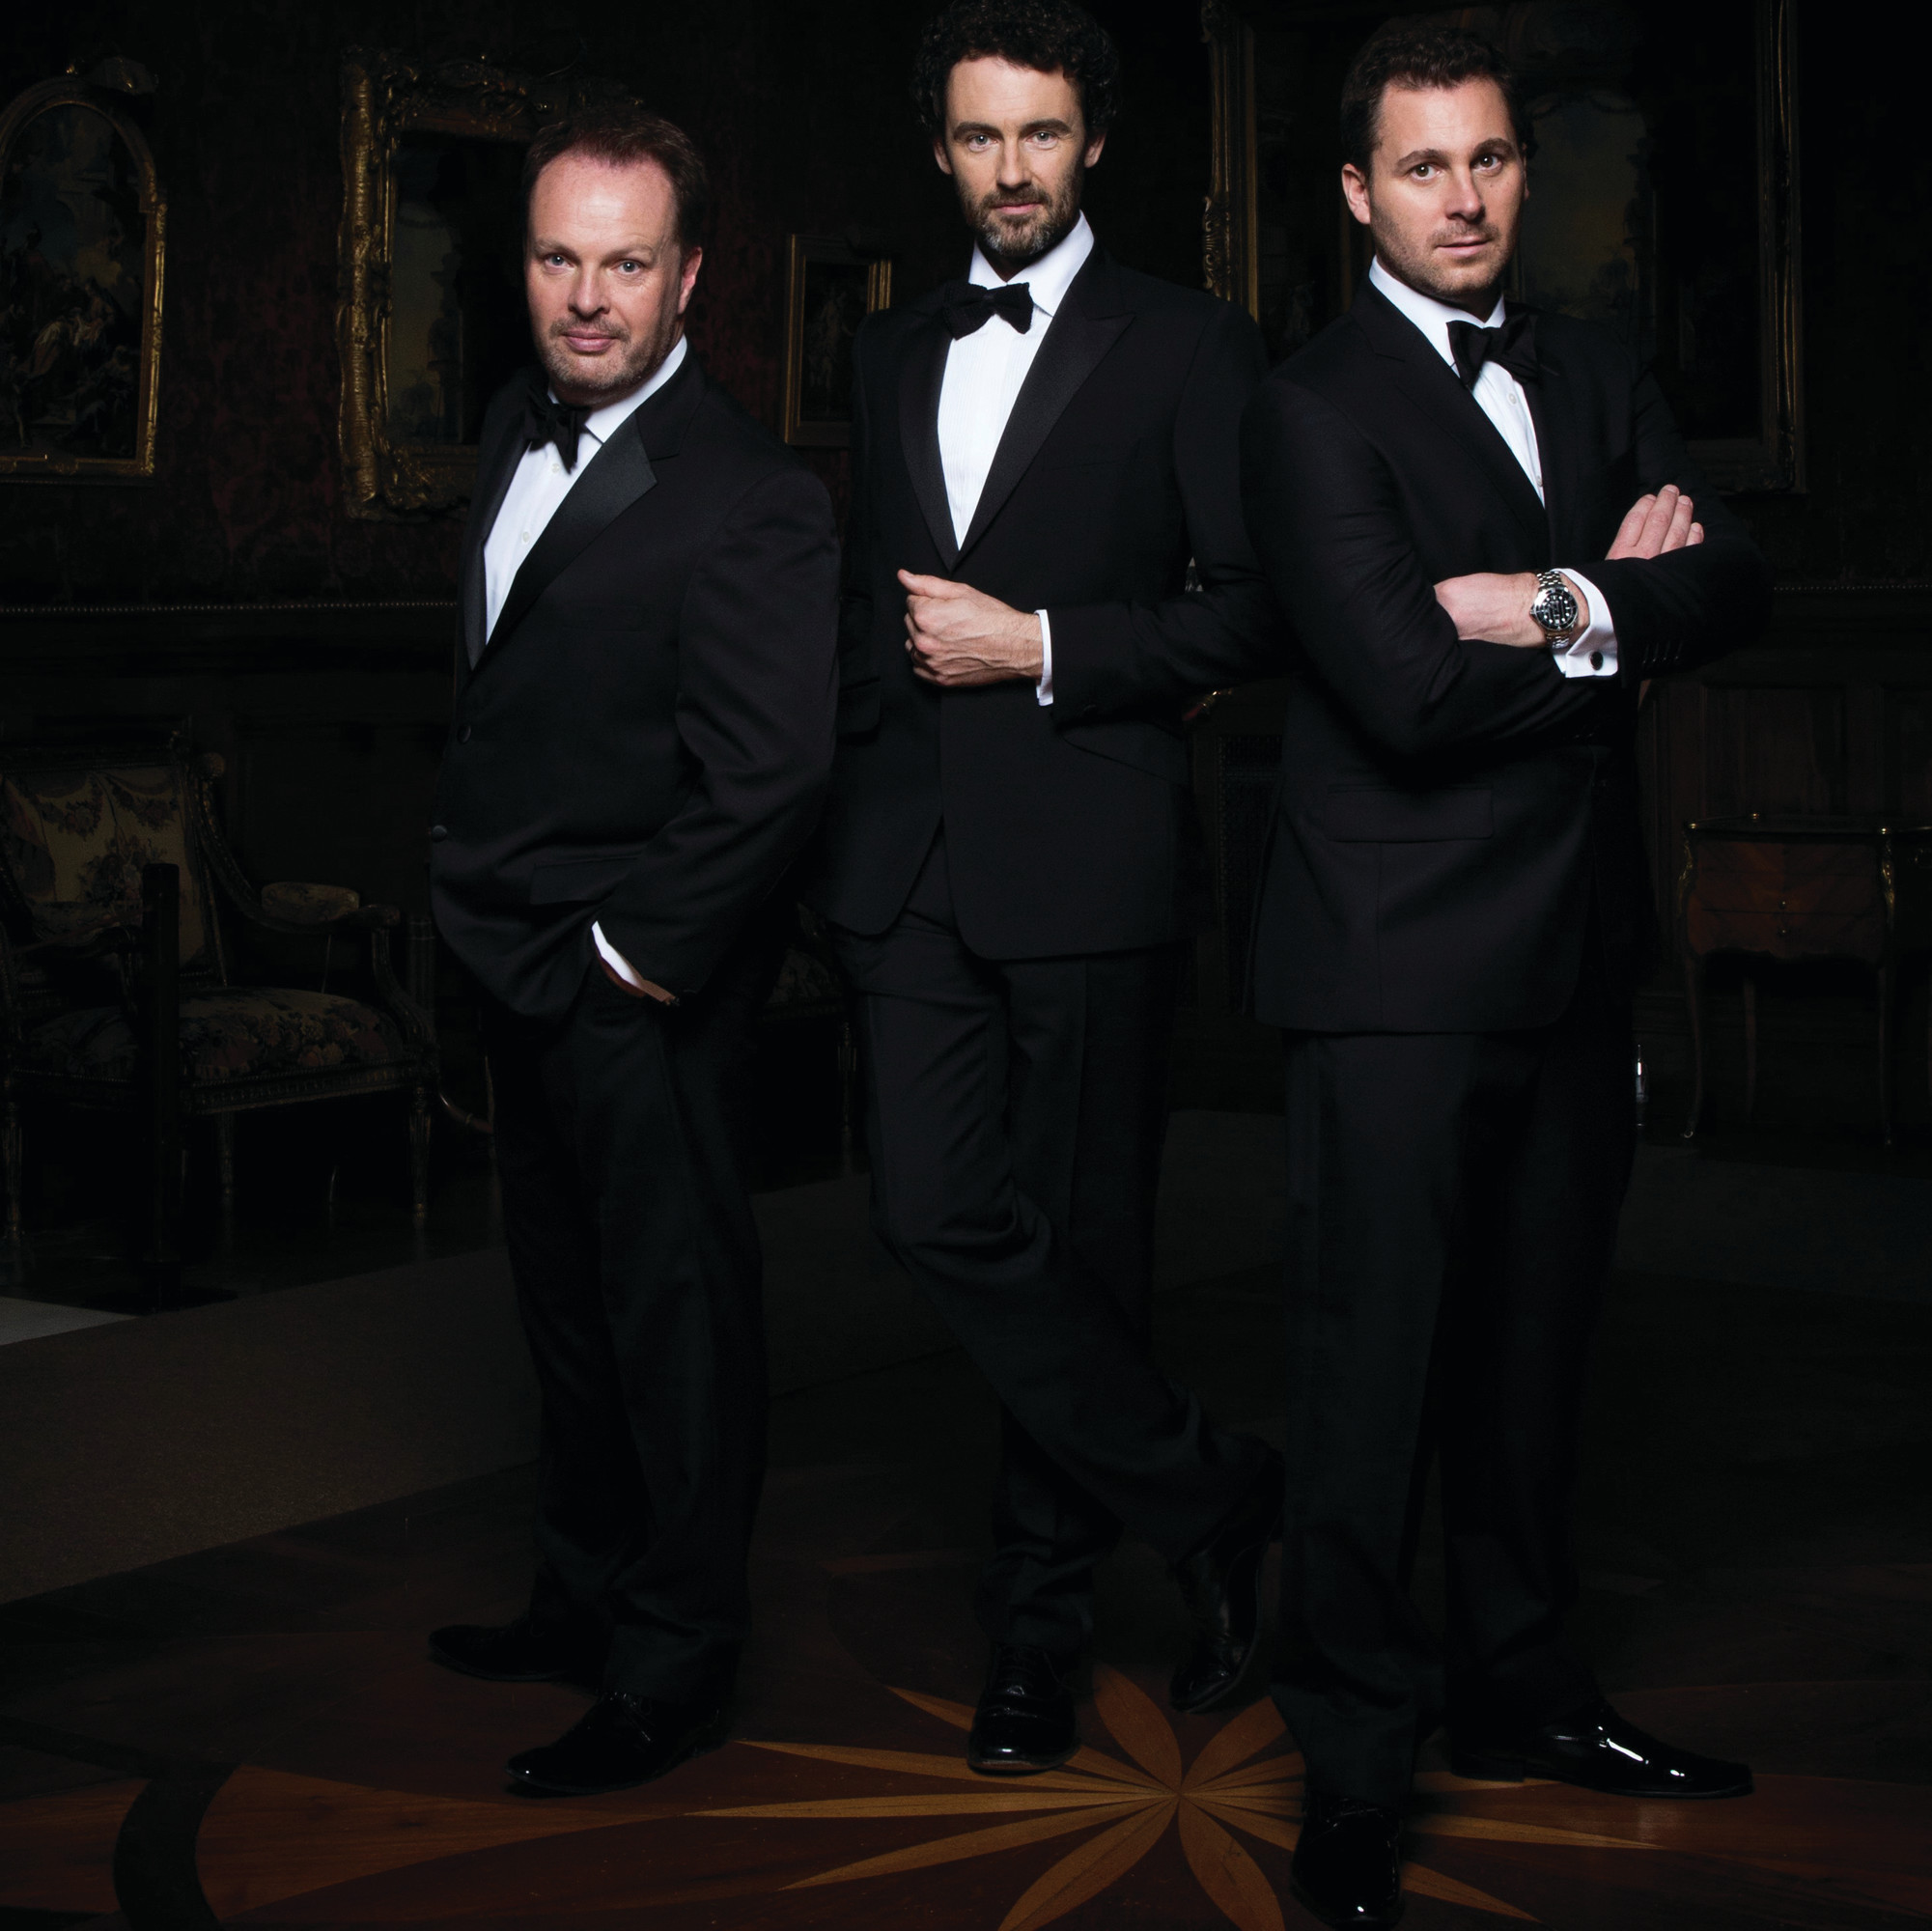 PHOTO PROVIDEDTickets for the Celtic Tenors concert can be purchased online at www.SumterOperaHouse.com or at the box office inside the Opera House.